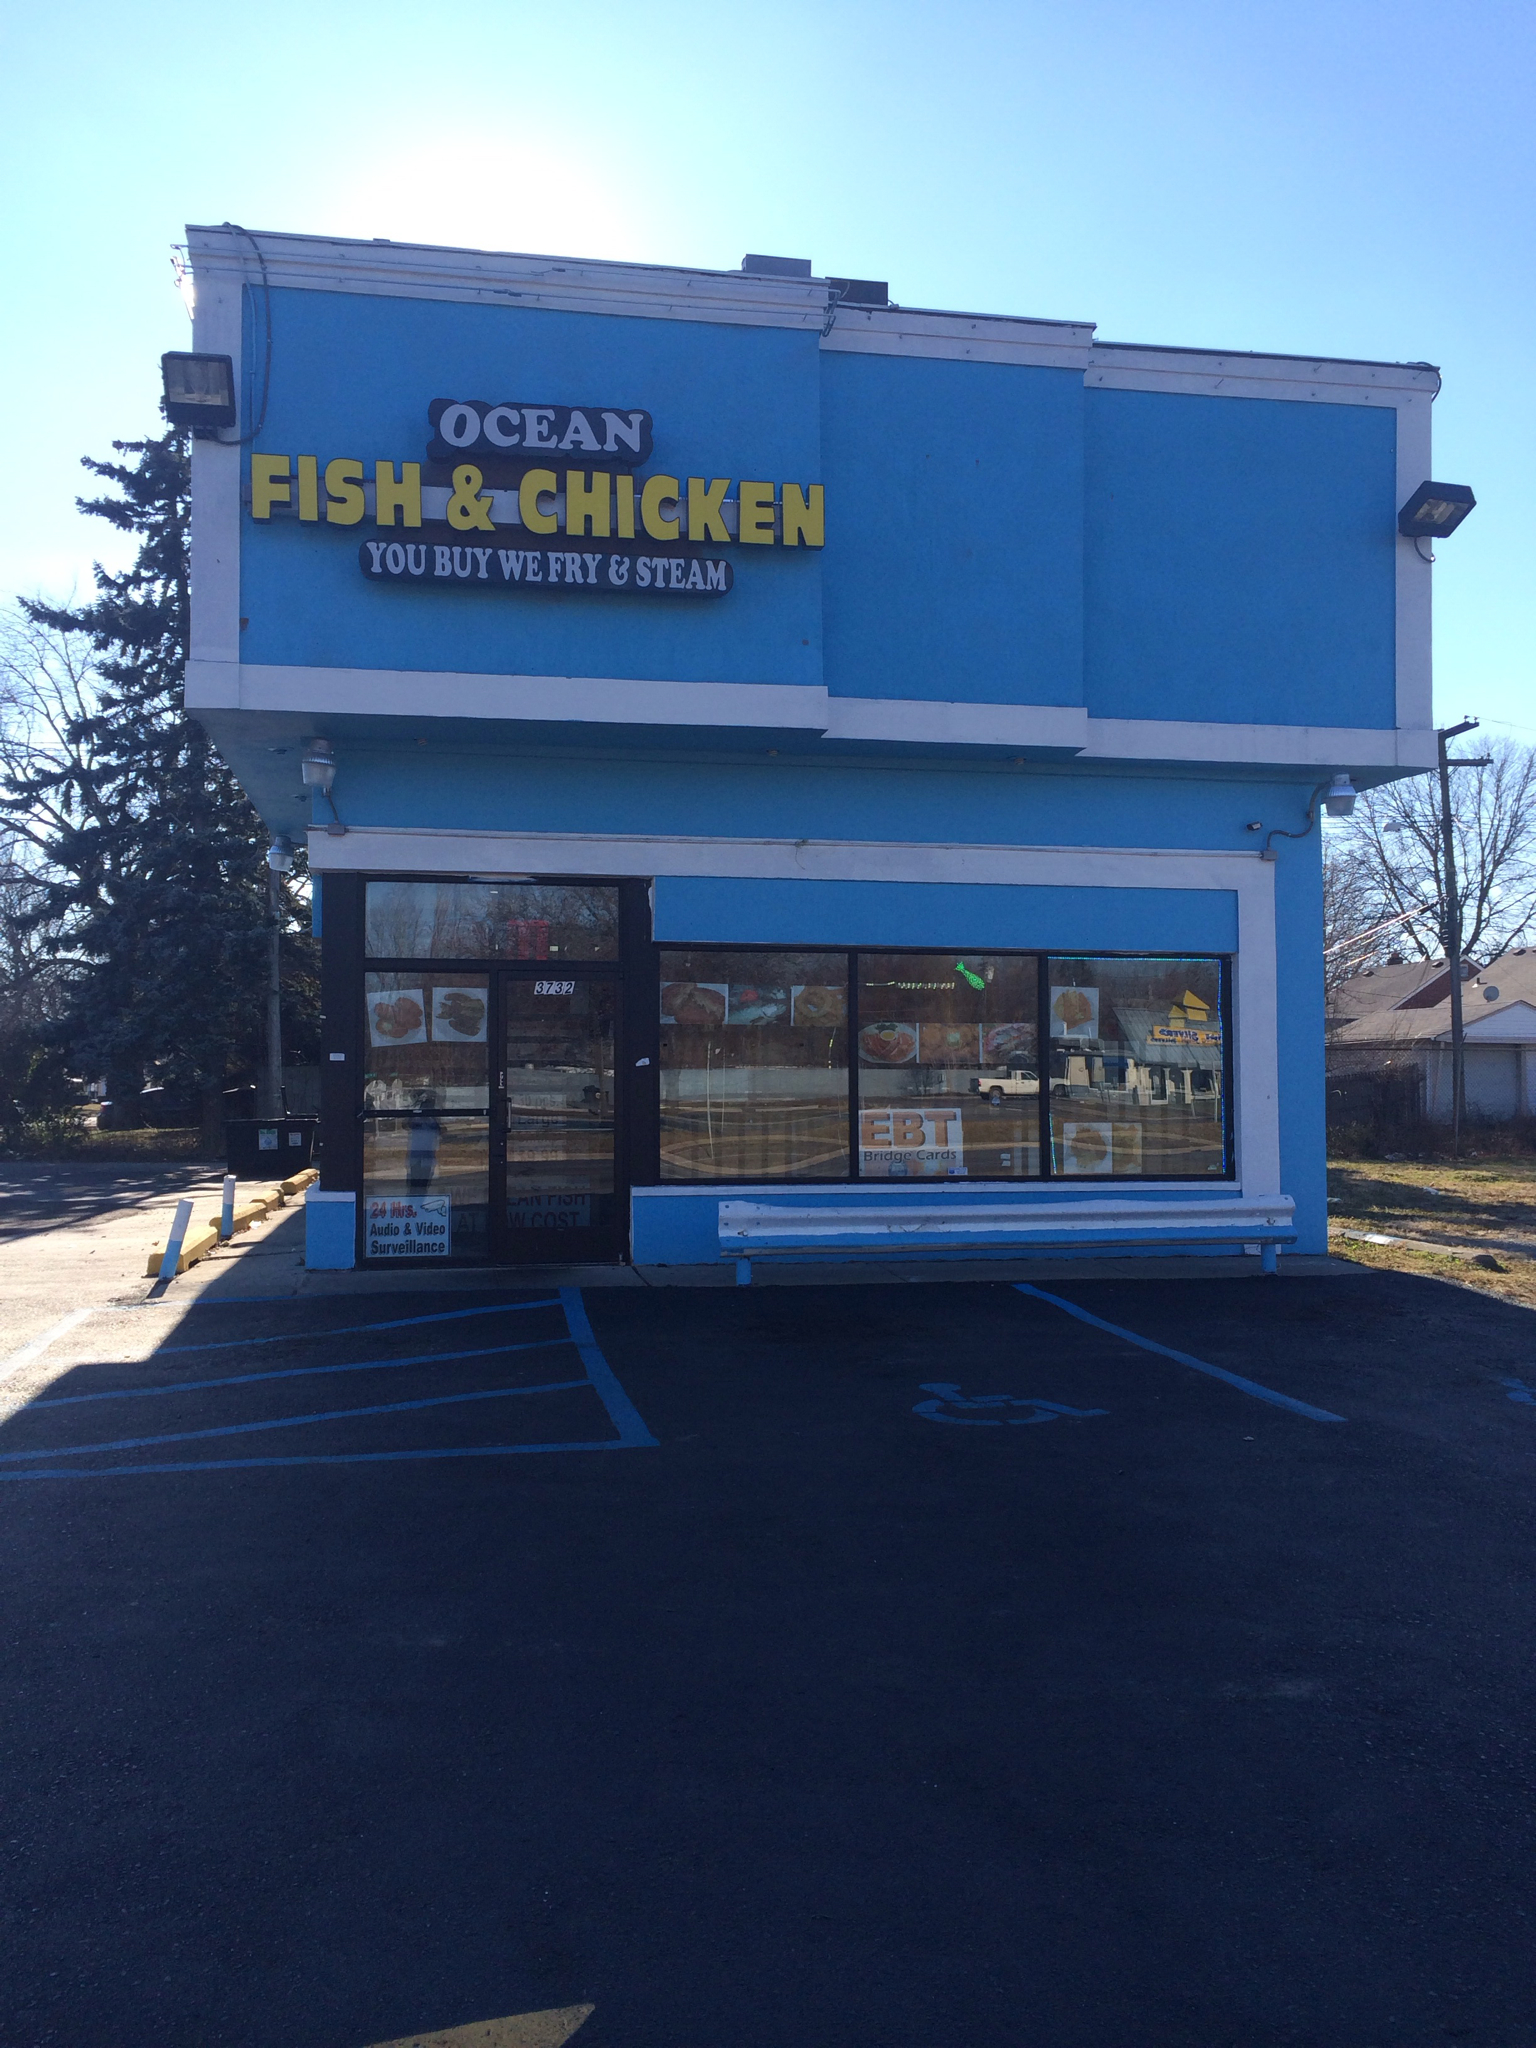 Ocean fish seafood 3732 e 8 mile rd detroit mi 48234 for Fish restaurants near me now